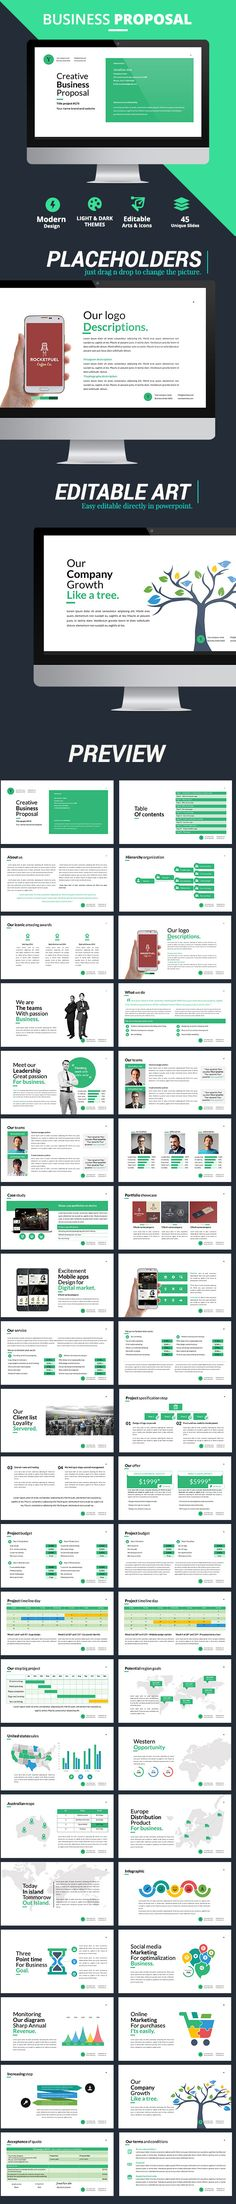 Business Proposal PowerPoint Presentation Template #design Download: http://graphicriver.net/item/business-proposal-presentation/12321309?ref=ksioks